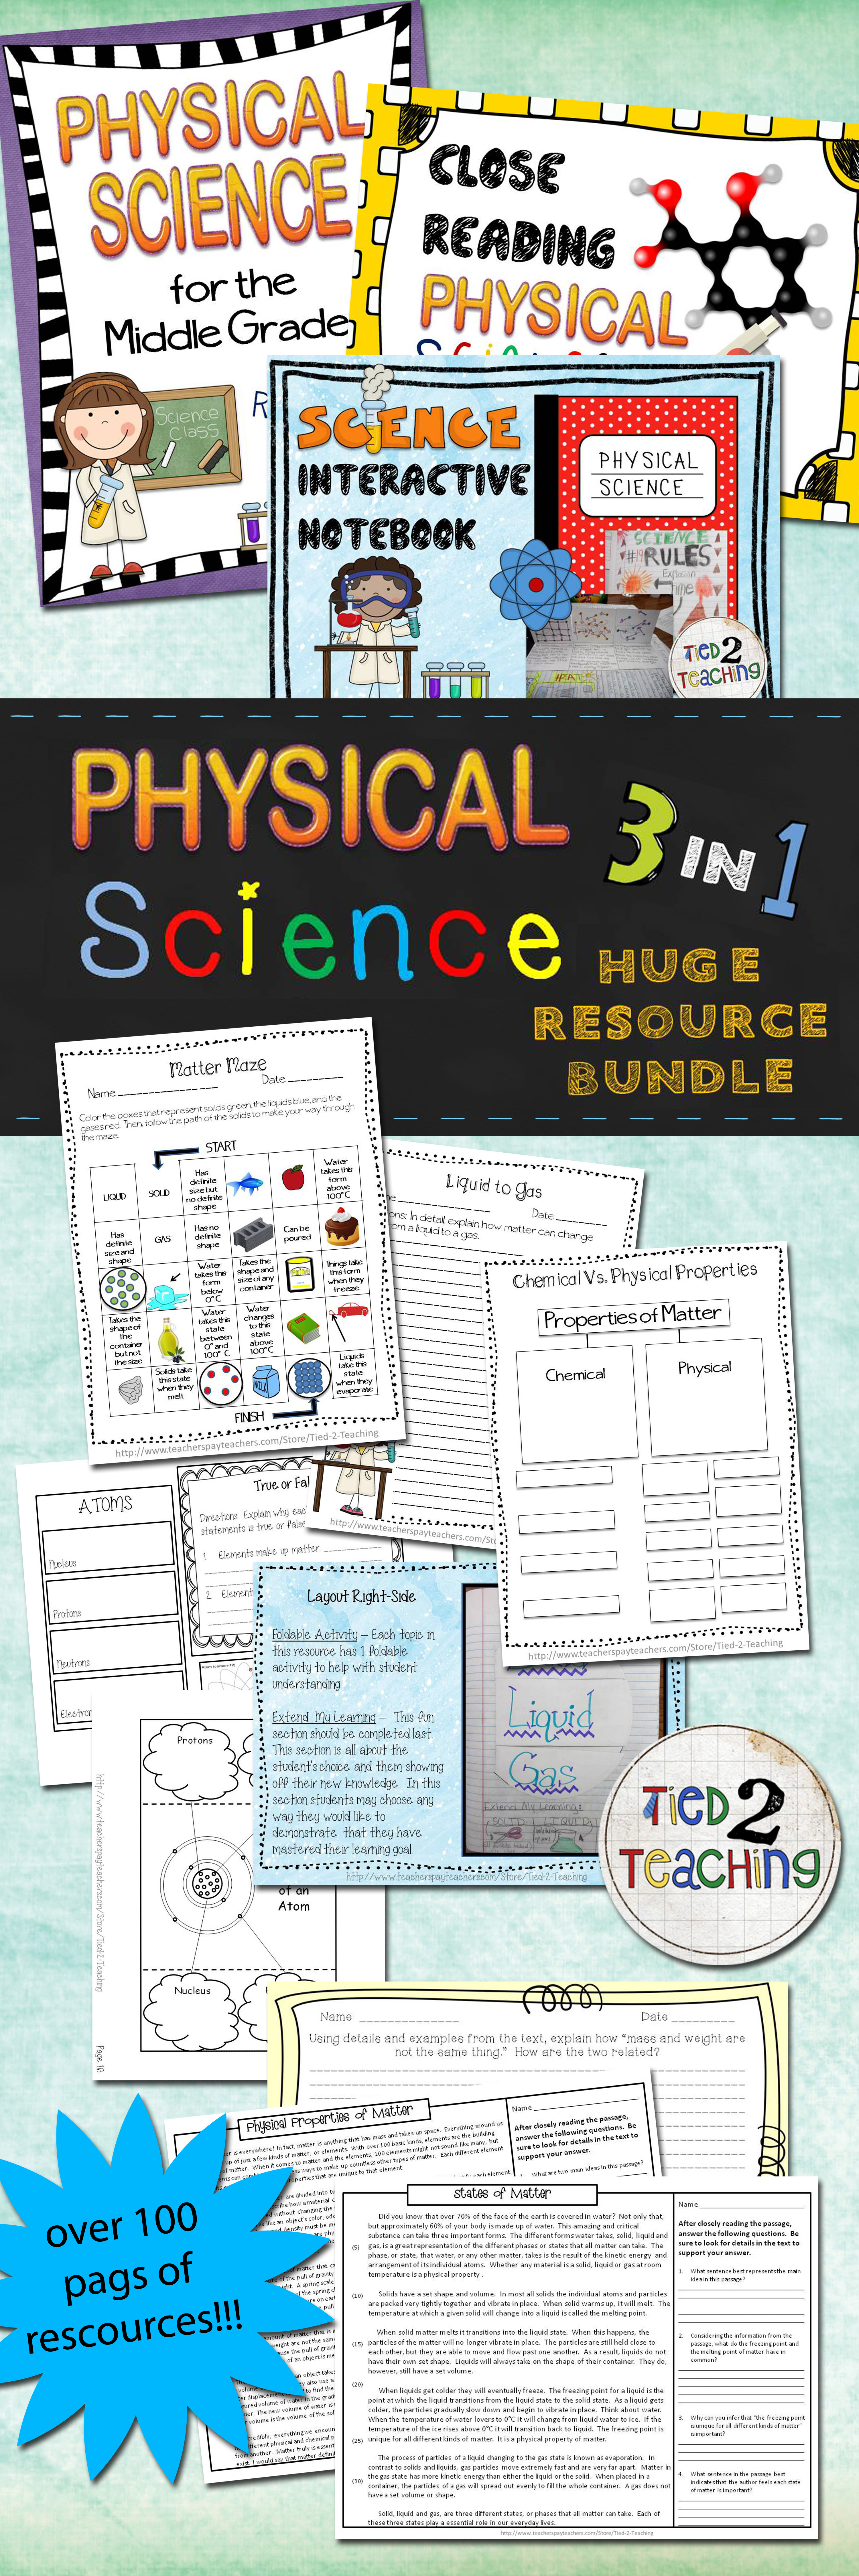 Physical Science 4 In 1 Huge Resource Bundle Middle Grades No Prep Homeschool